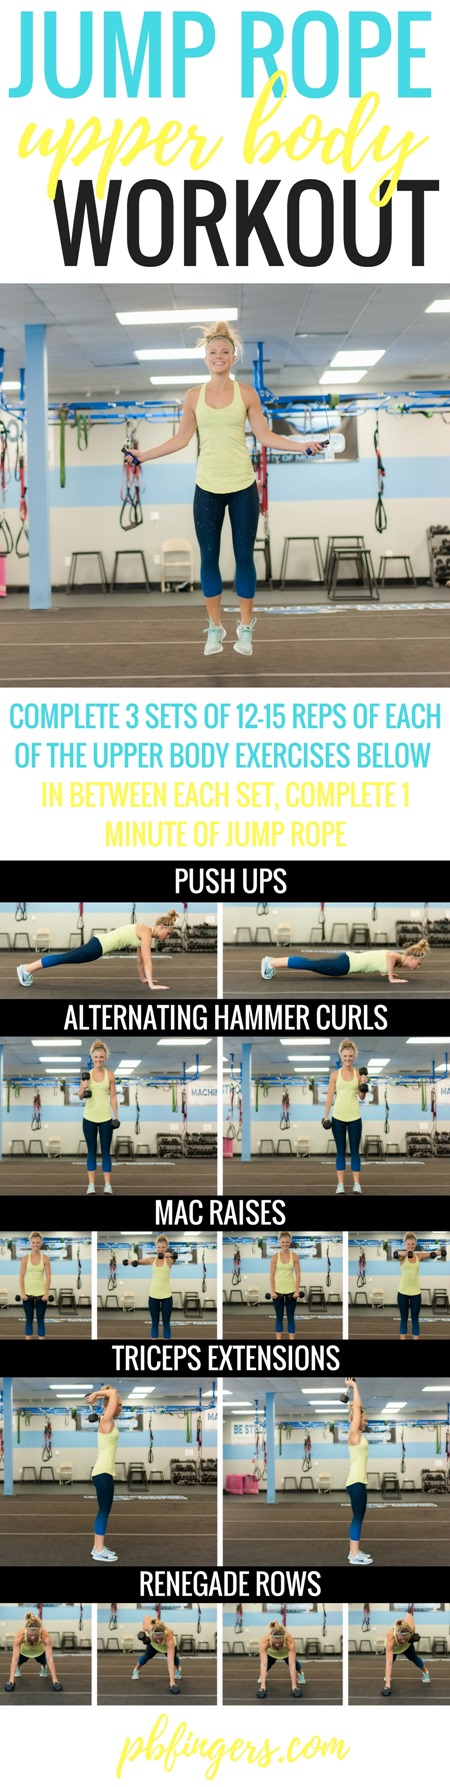 JUMP ROPE Upper Body WORKOUT